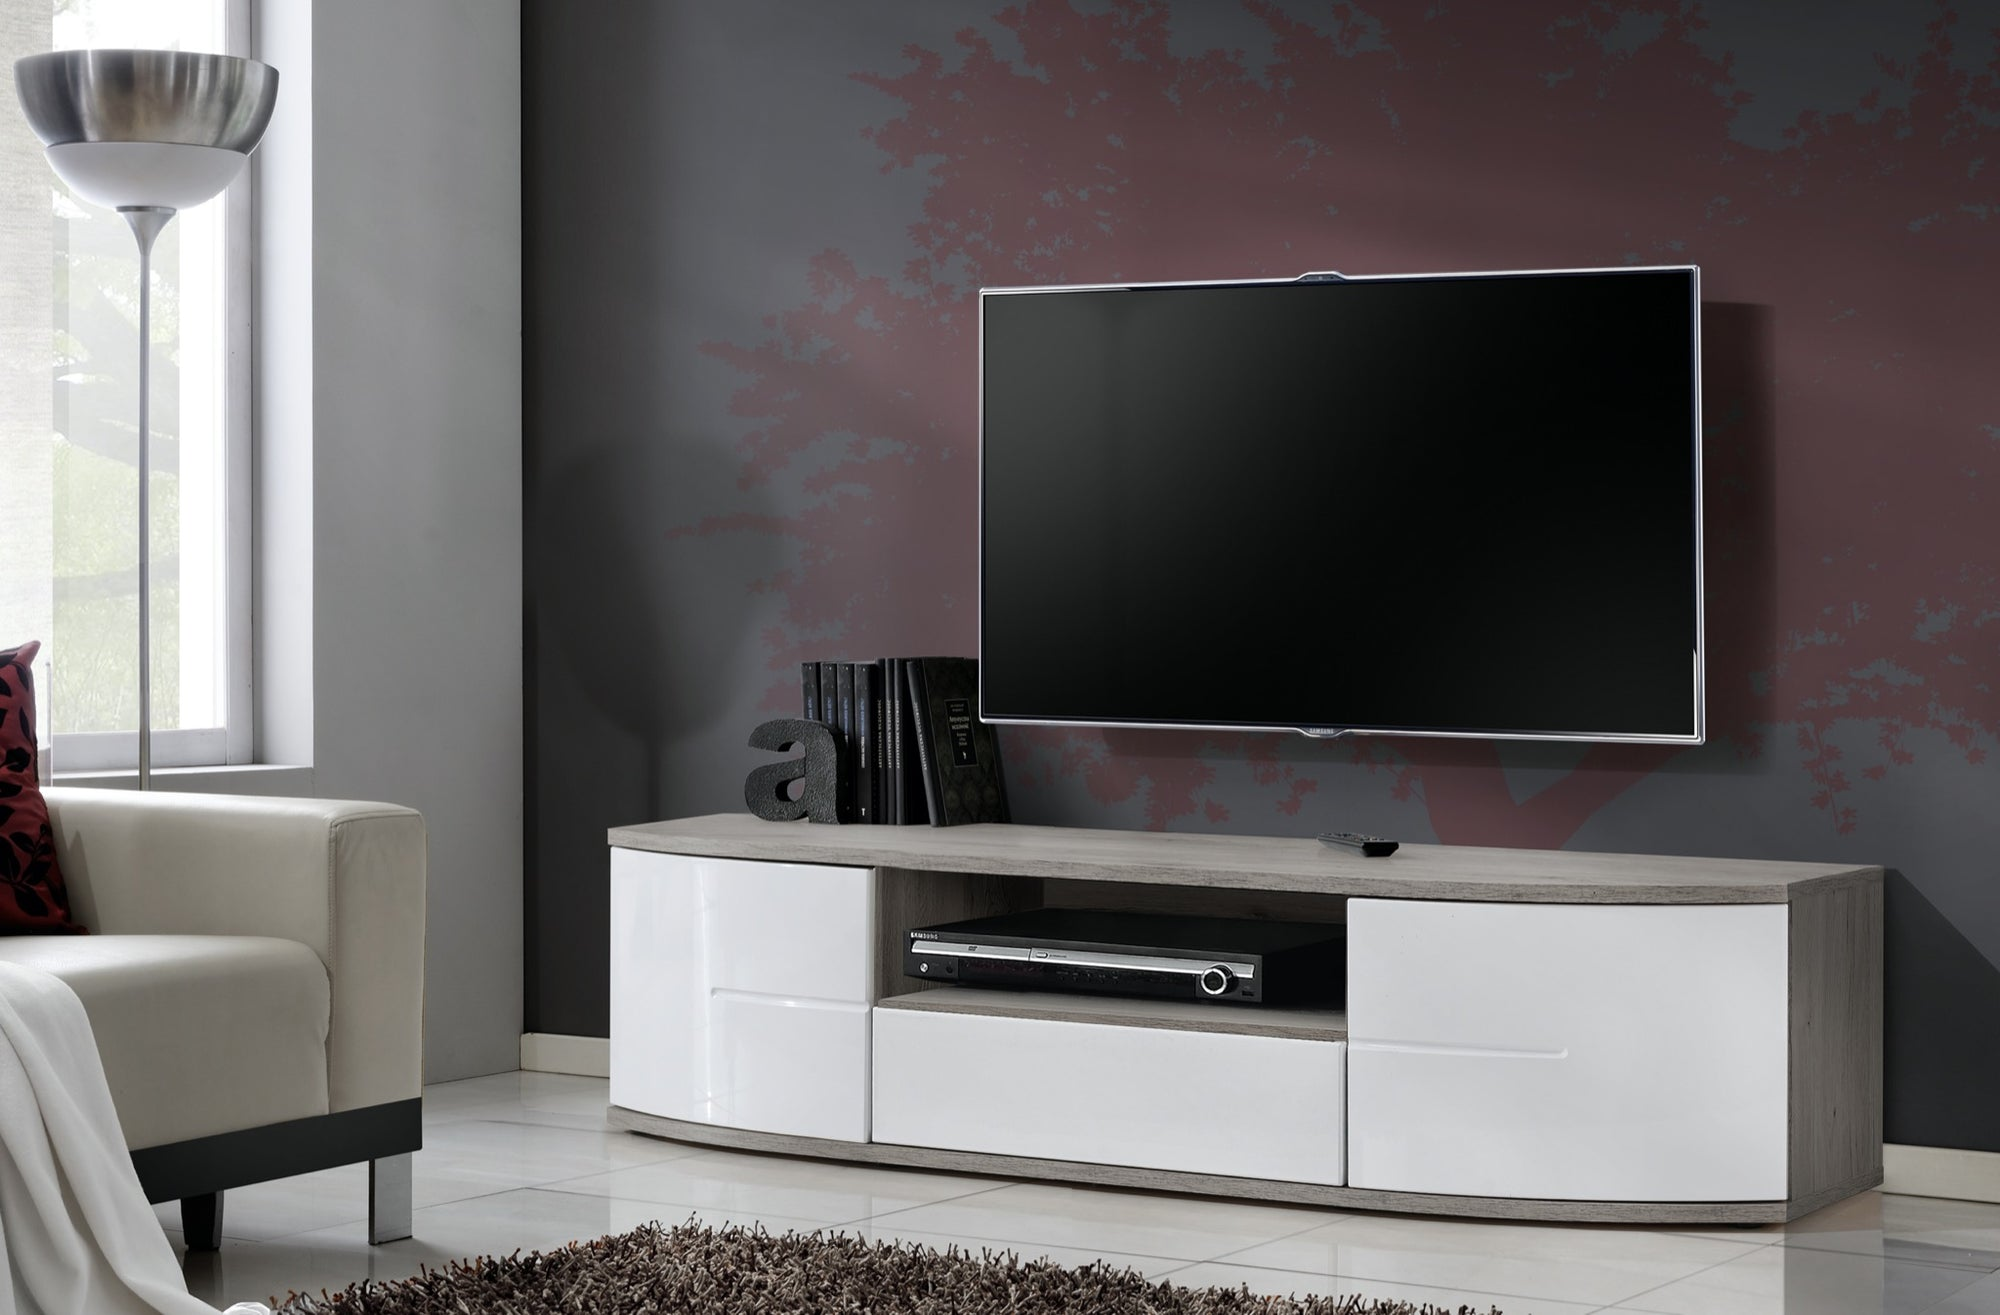 Meuble TV Chêne San remo/Blanc - Collection Prestige